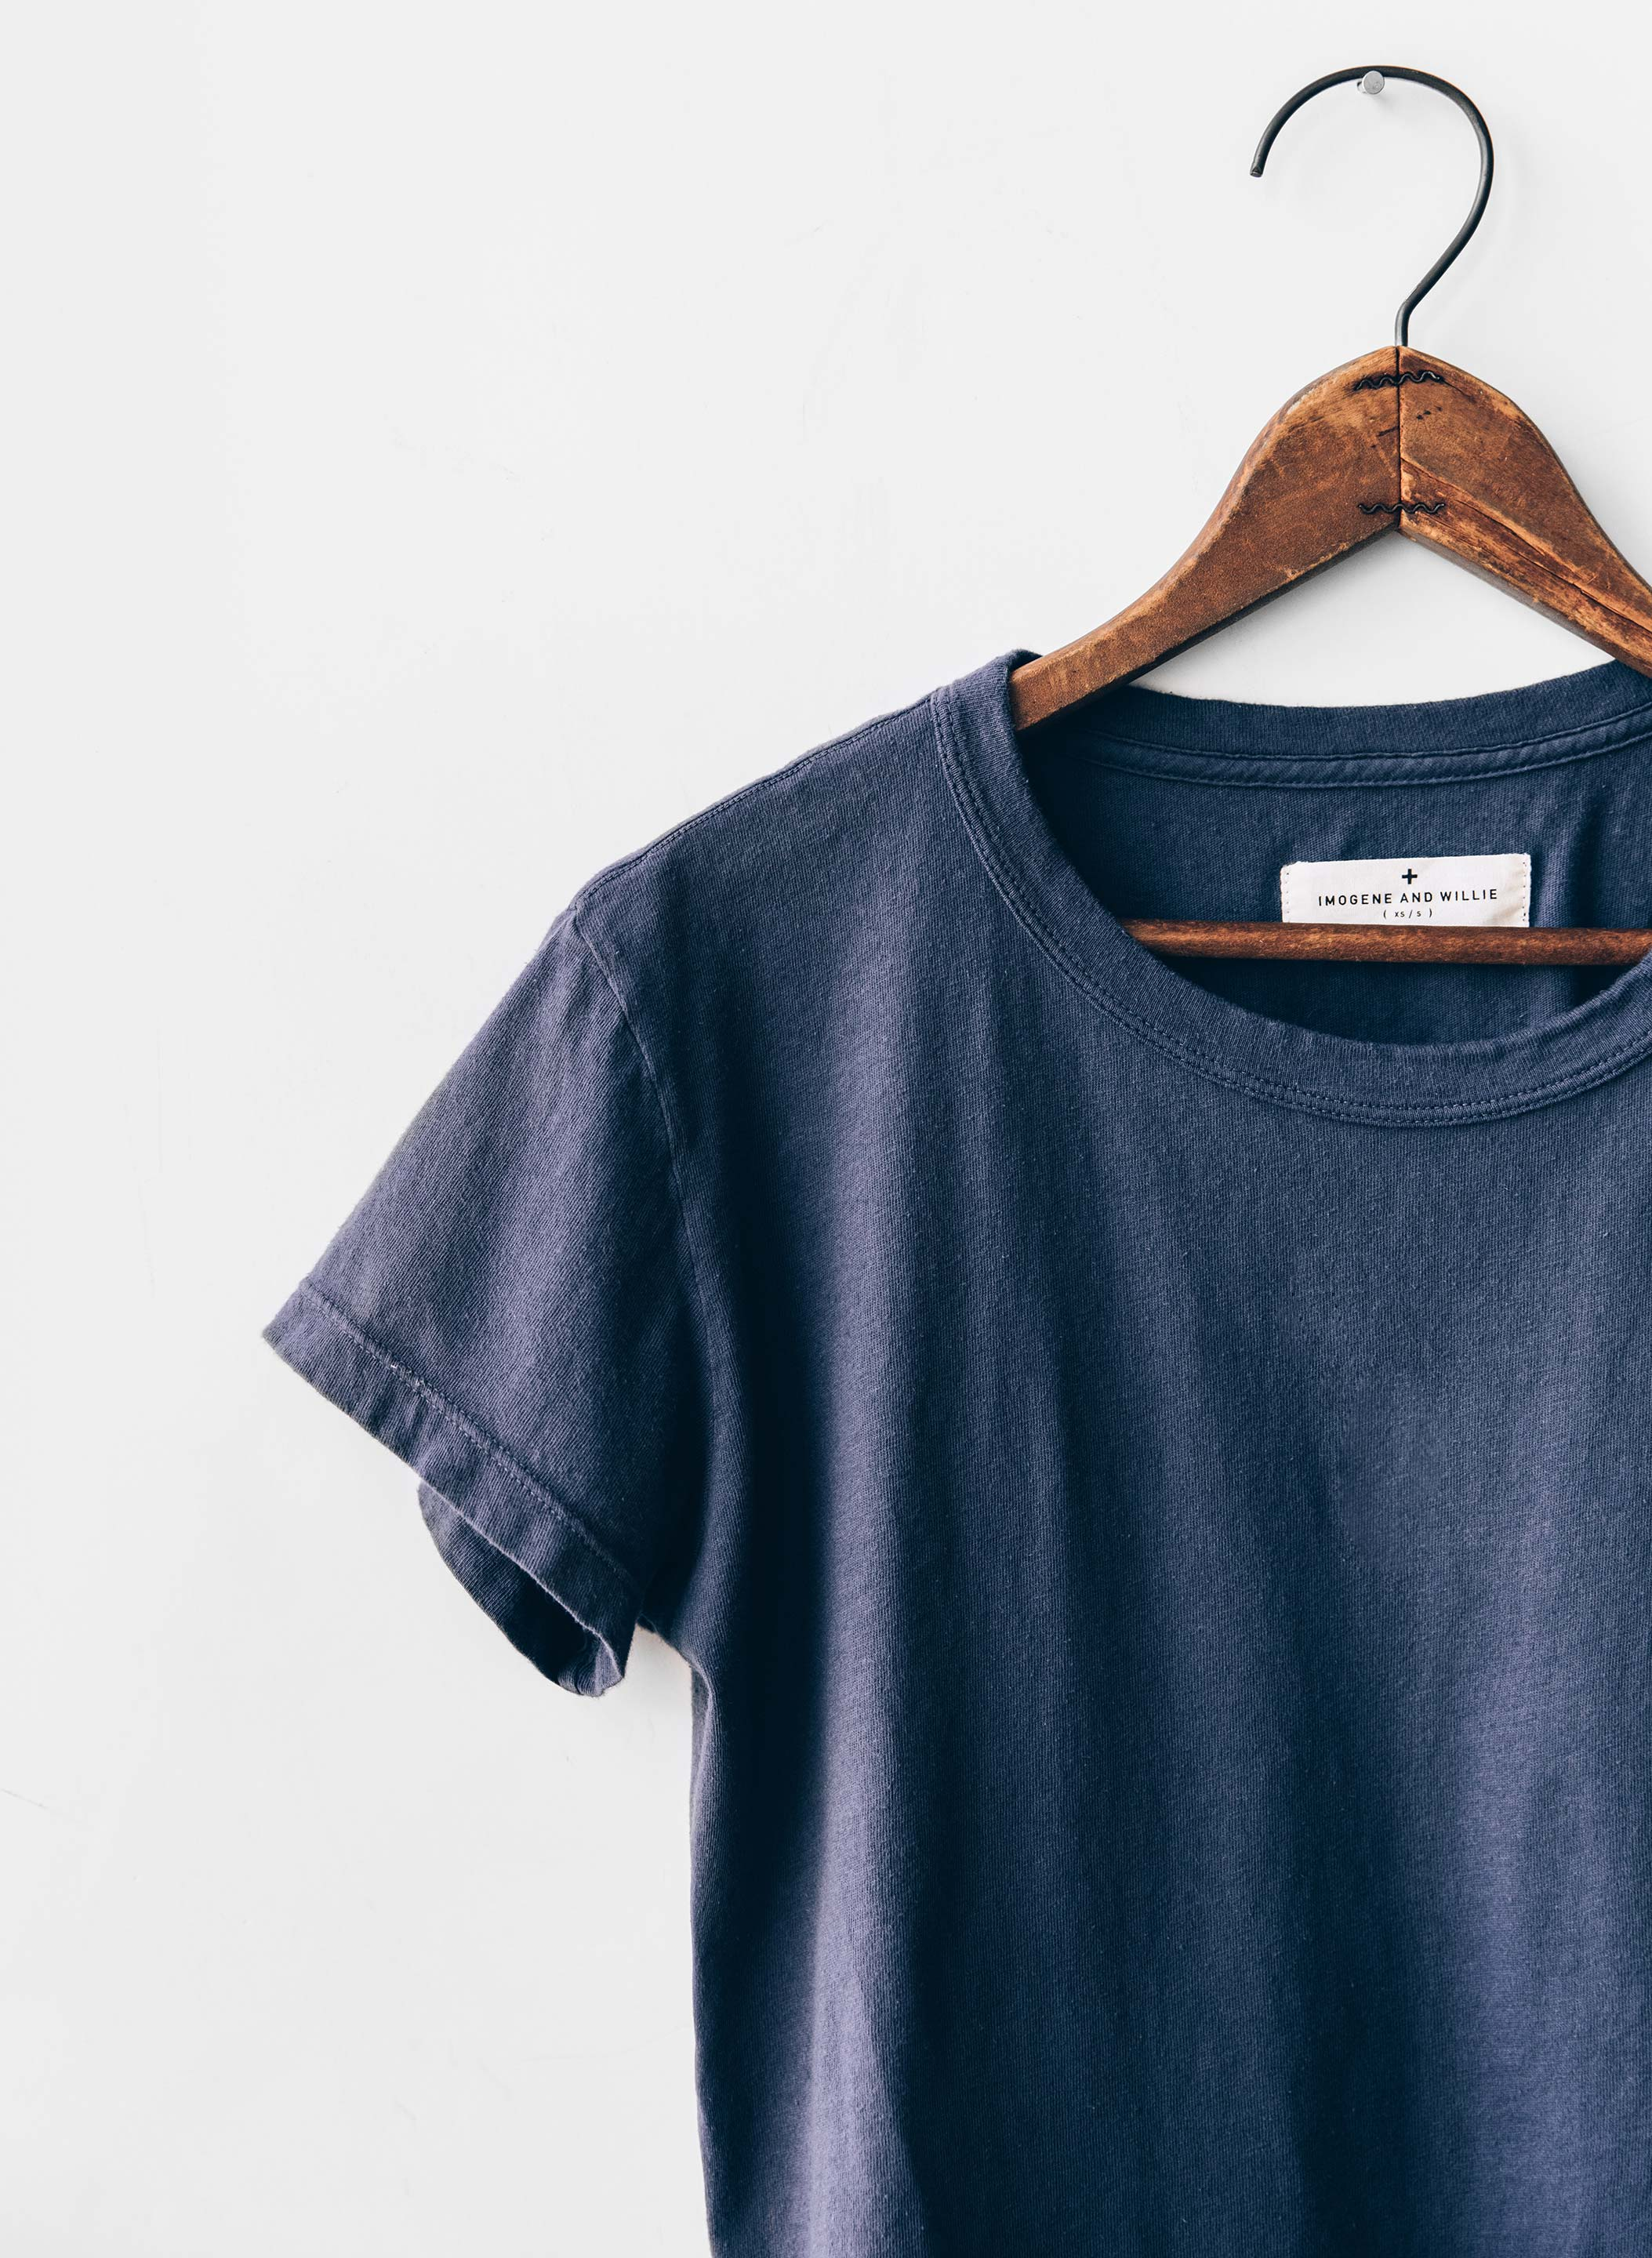 imogene + willie - the drop tee in faded blue